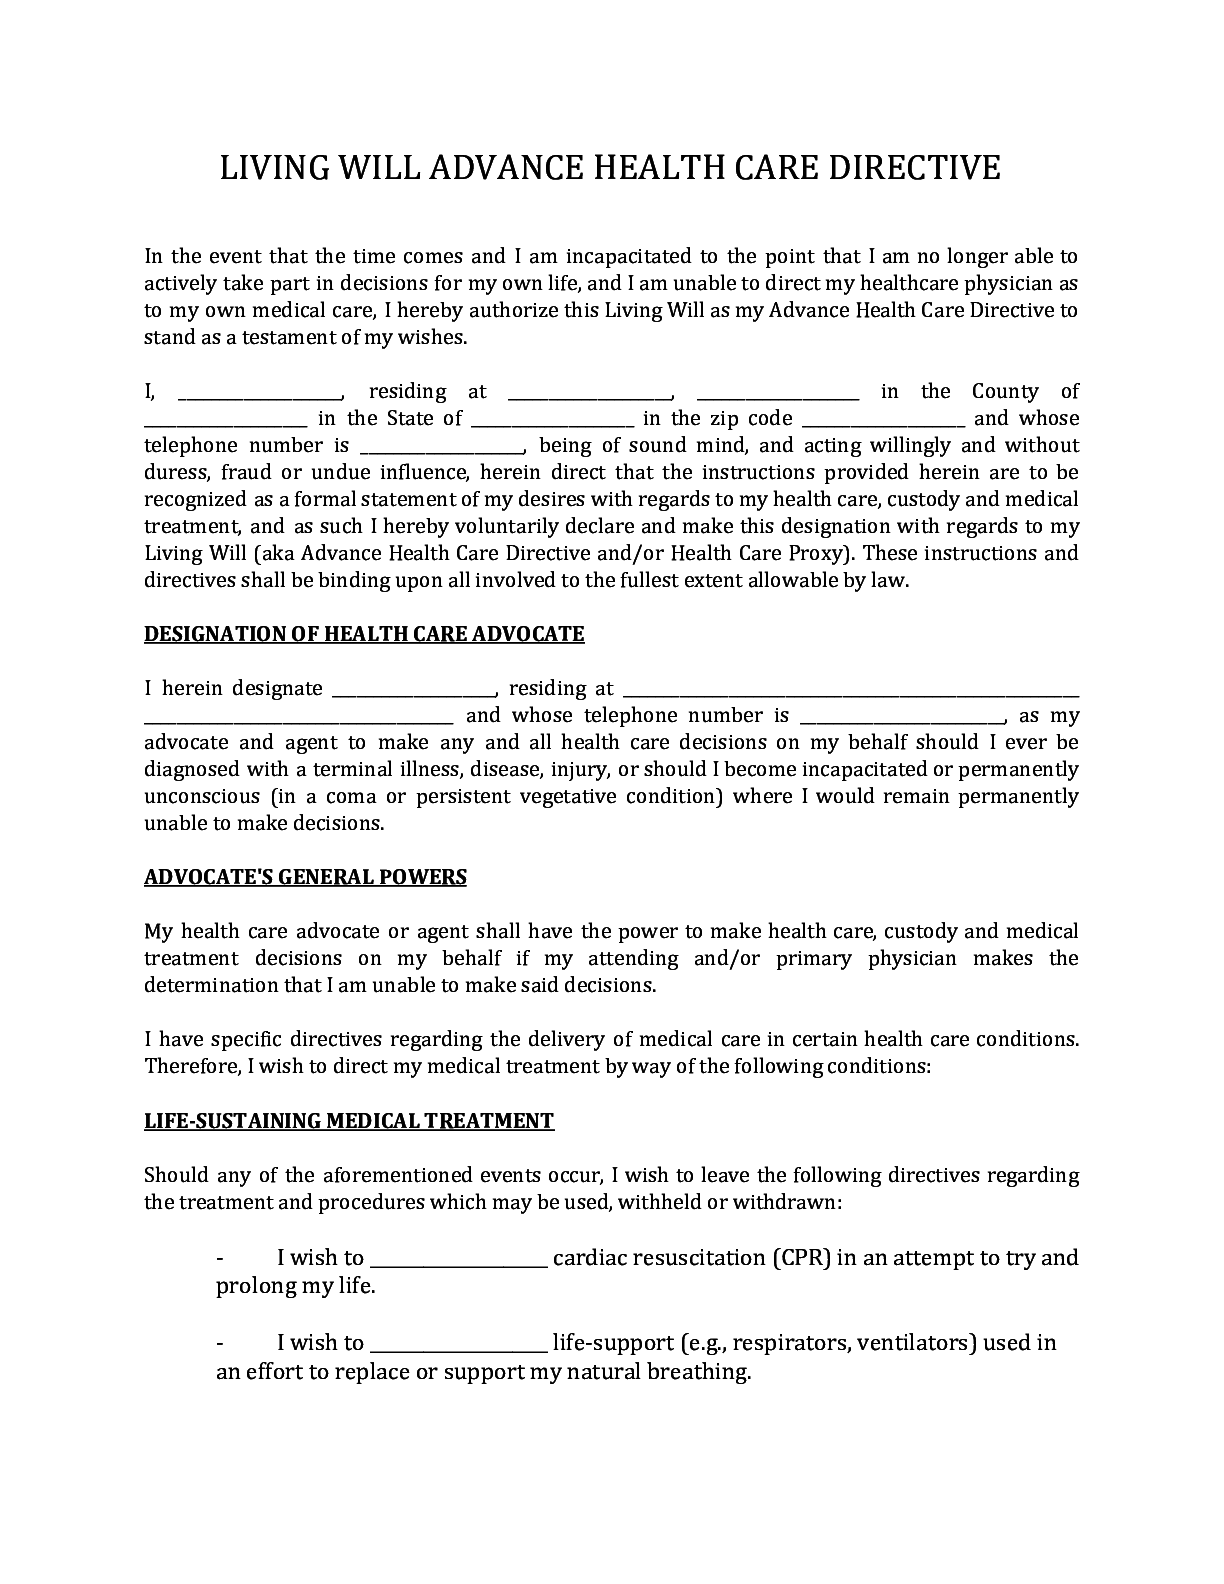 Michigan Living Will Form Fillable Pdf Template